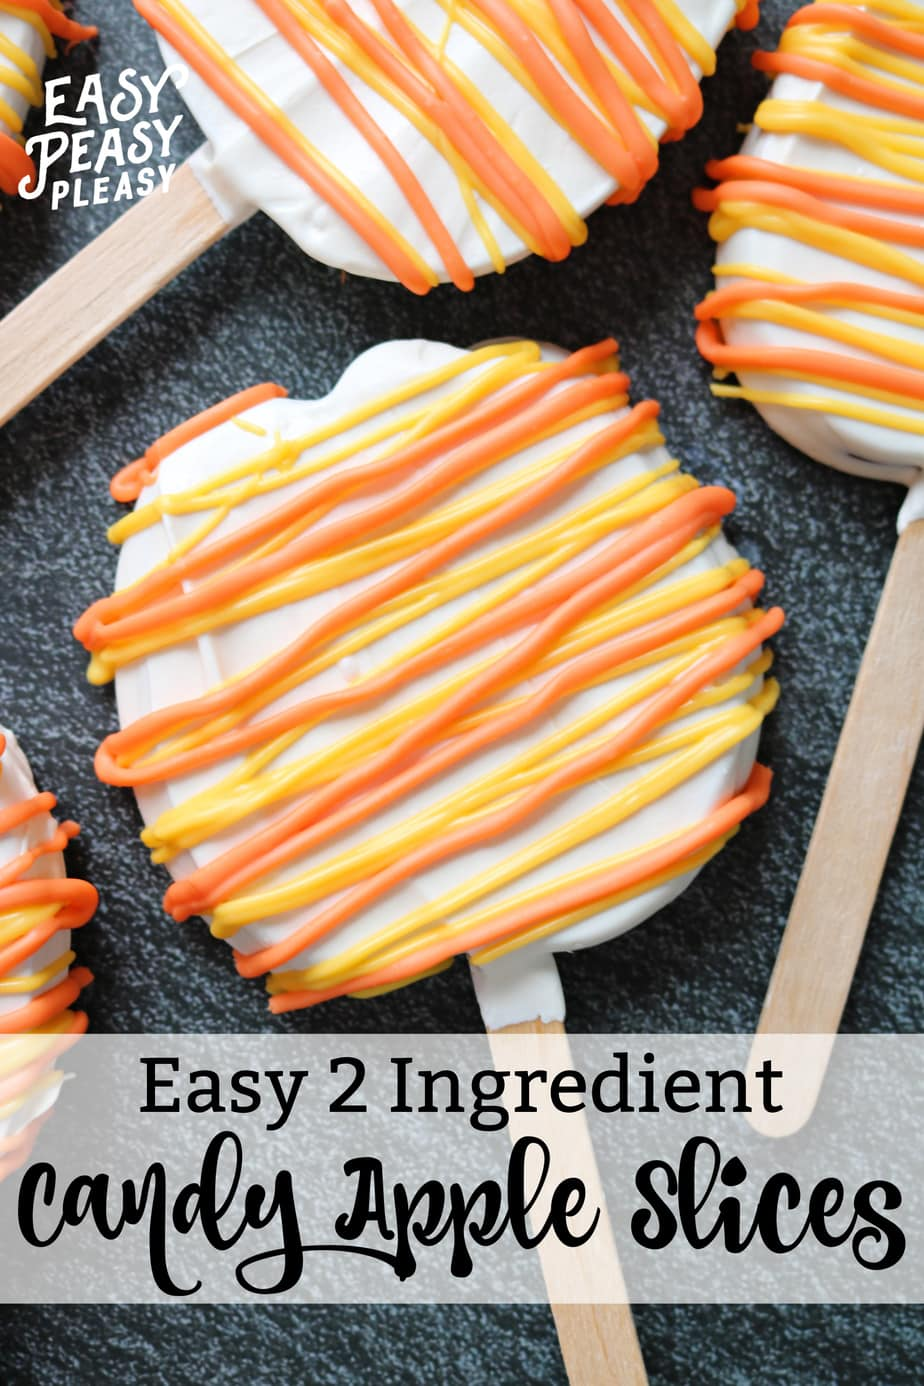 Easy Candy Apple Slices using only 2 Ingredients with the colors of candy corn perfect for Halloween.